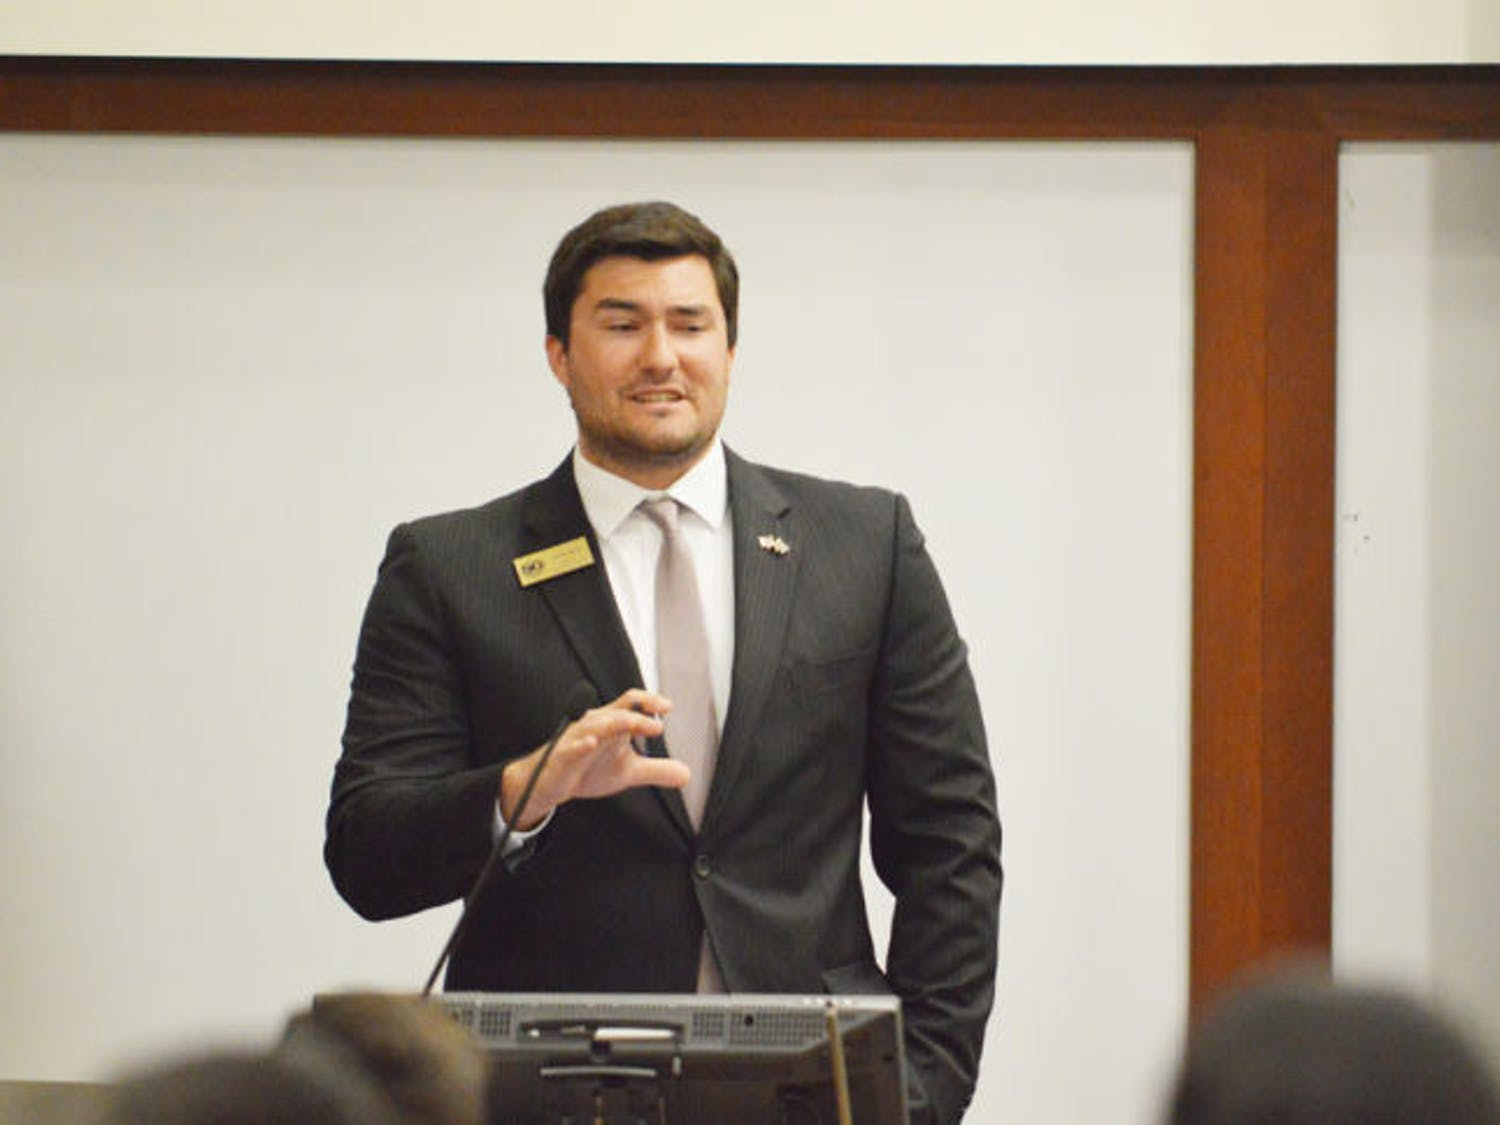 Sen. Davis Bean, chairman of the budget and appropriations committee, discusses the 2014-2015 Student Government-funded organizational budget during Tuesday's Student Senate meeting.